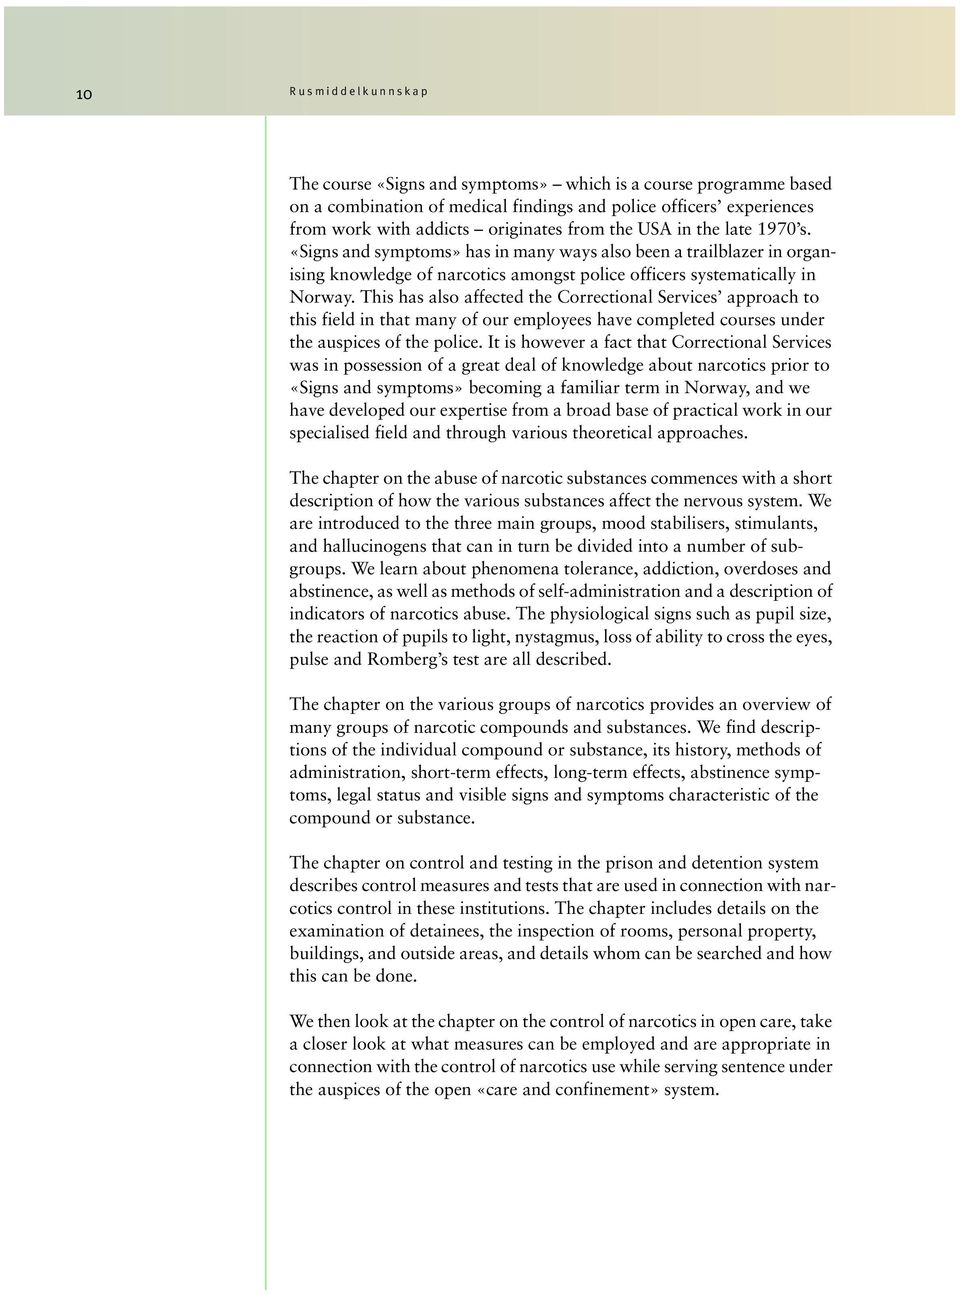 This has also affected the Correctional Services approach to this field in that many of our employees have completed courses under the auspices of the police.